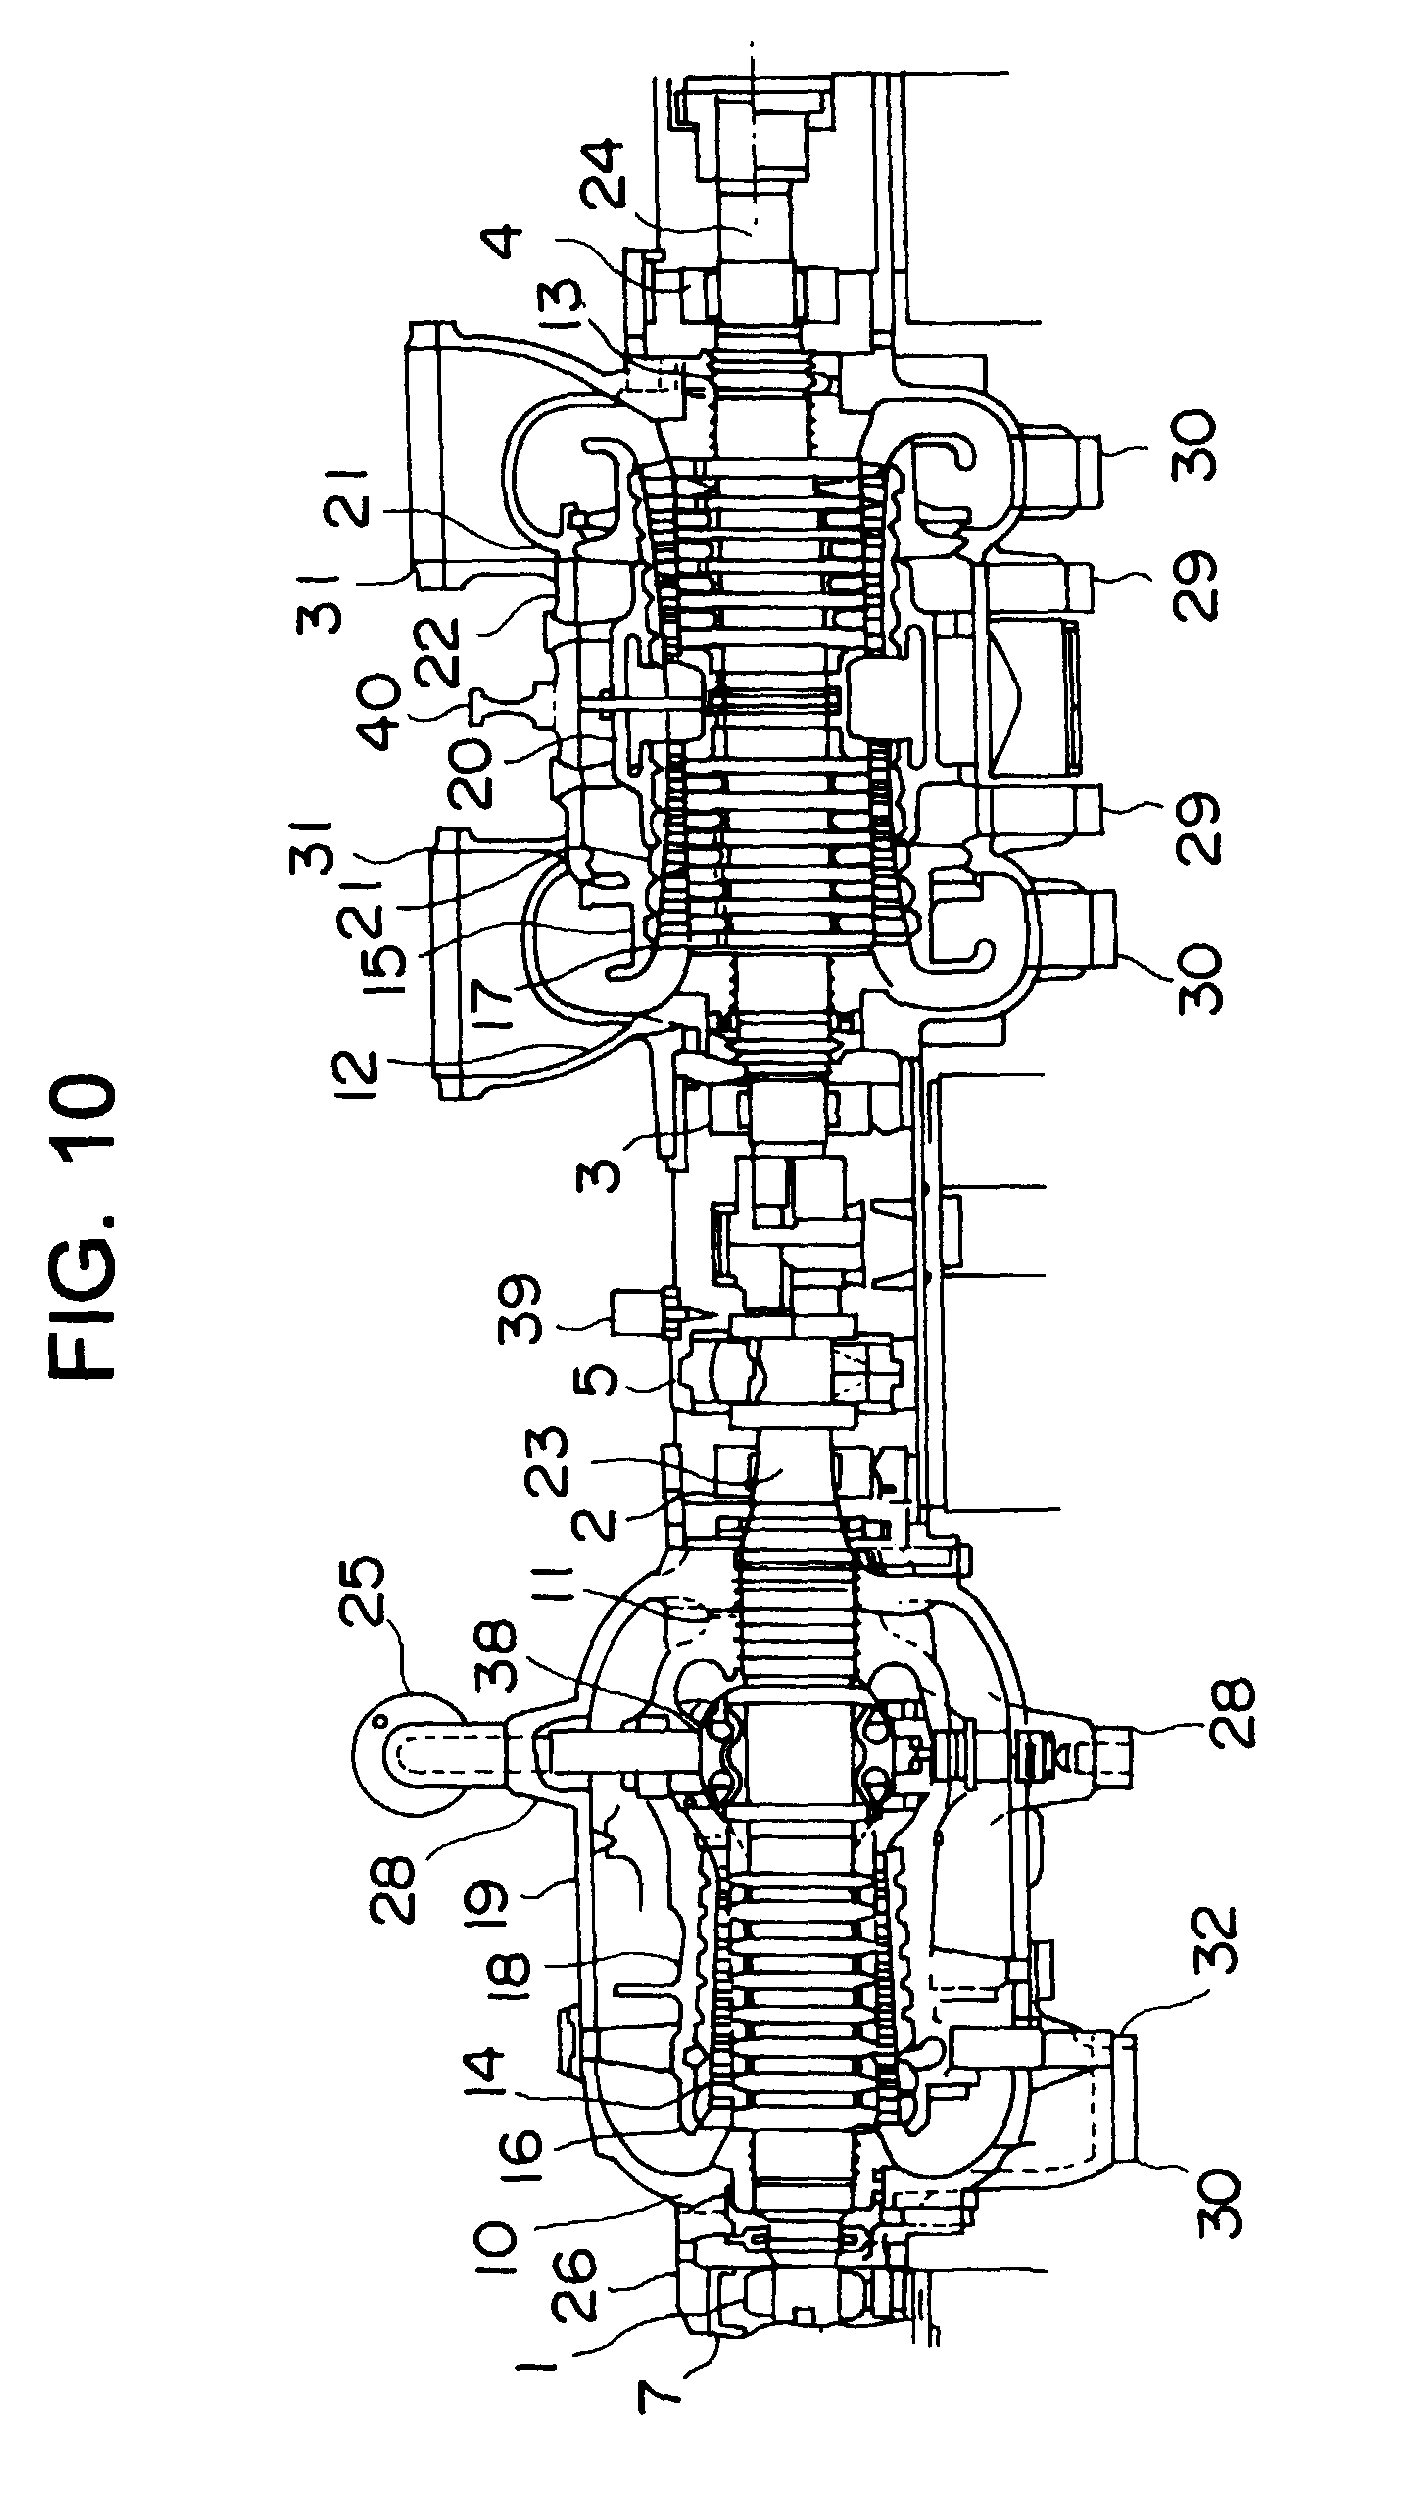 Patent EP A1 Steam turbine blade method of manufacturing